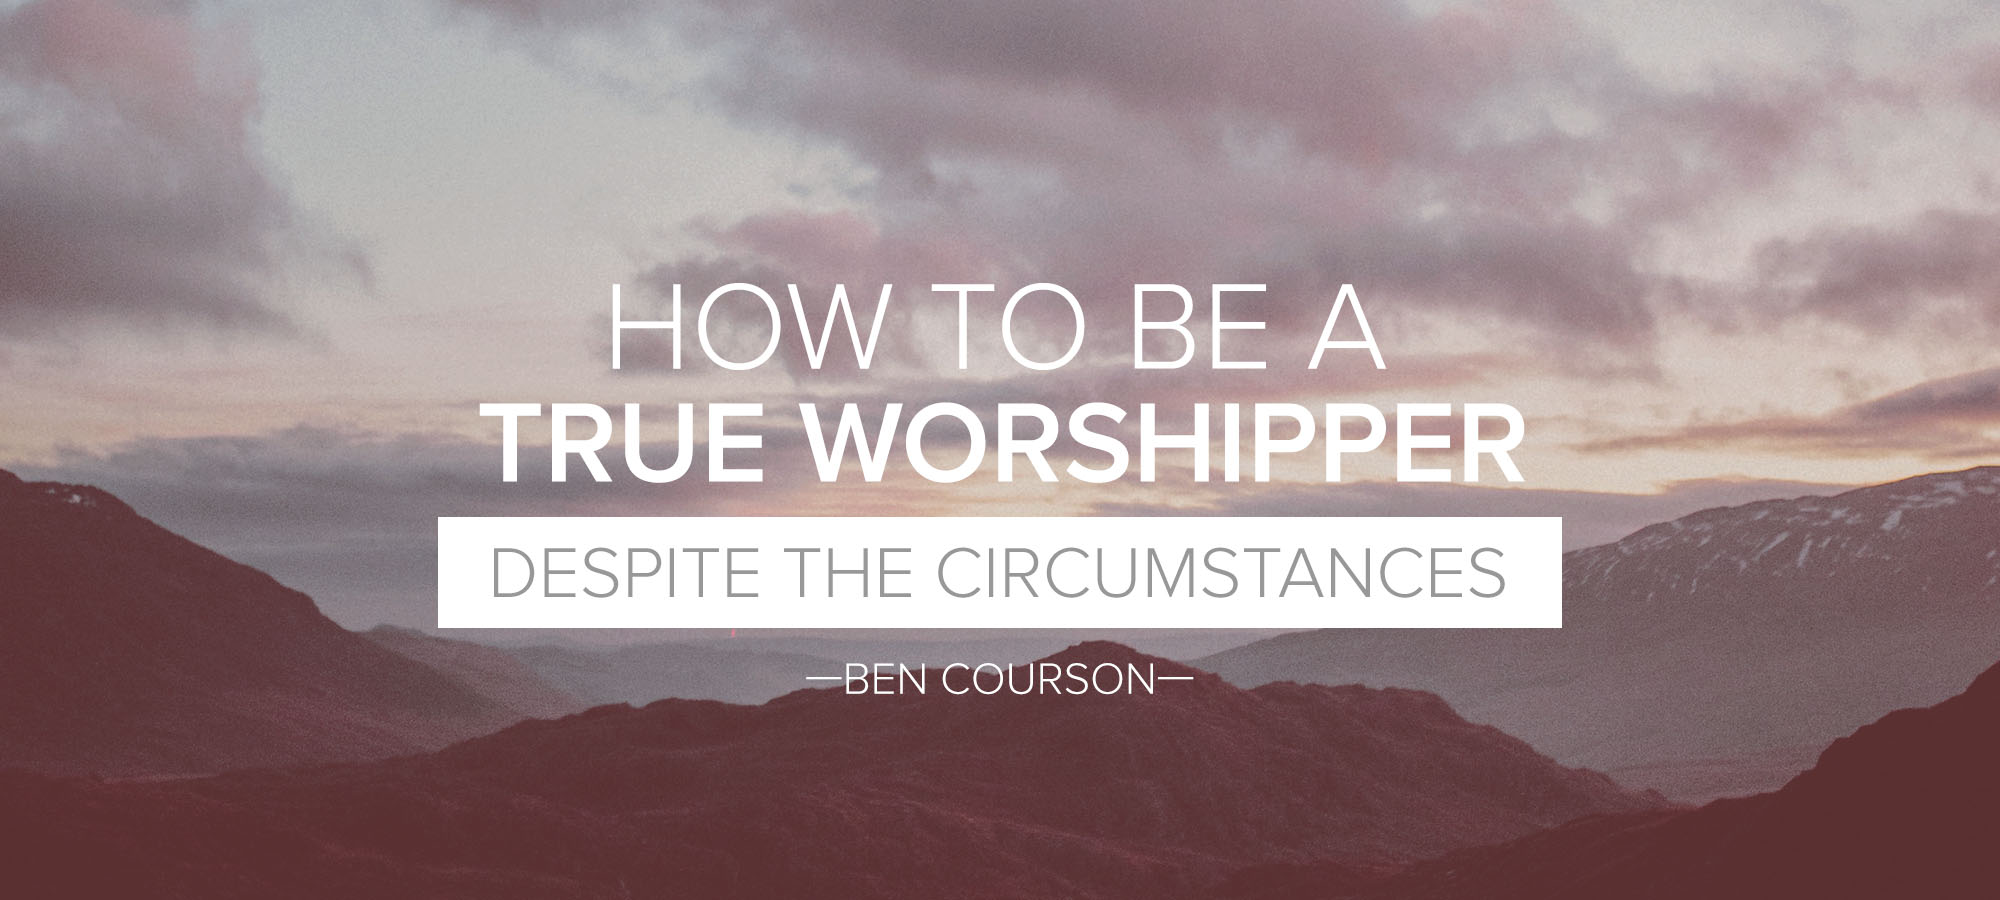 How to be a True Worshipper Despite the Circumstances